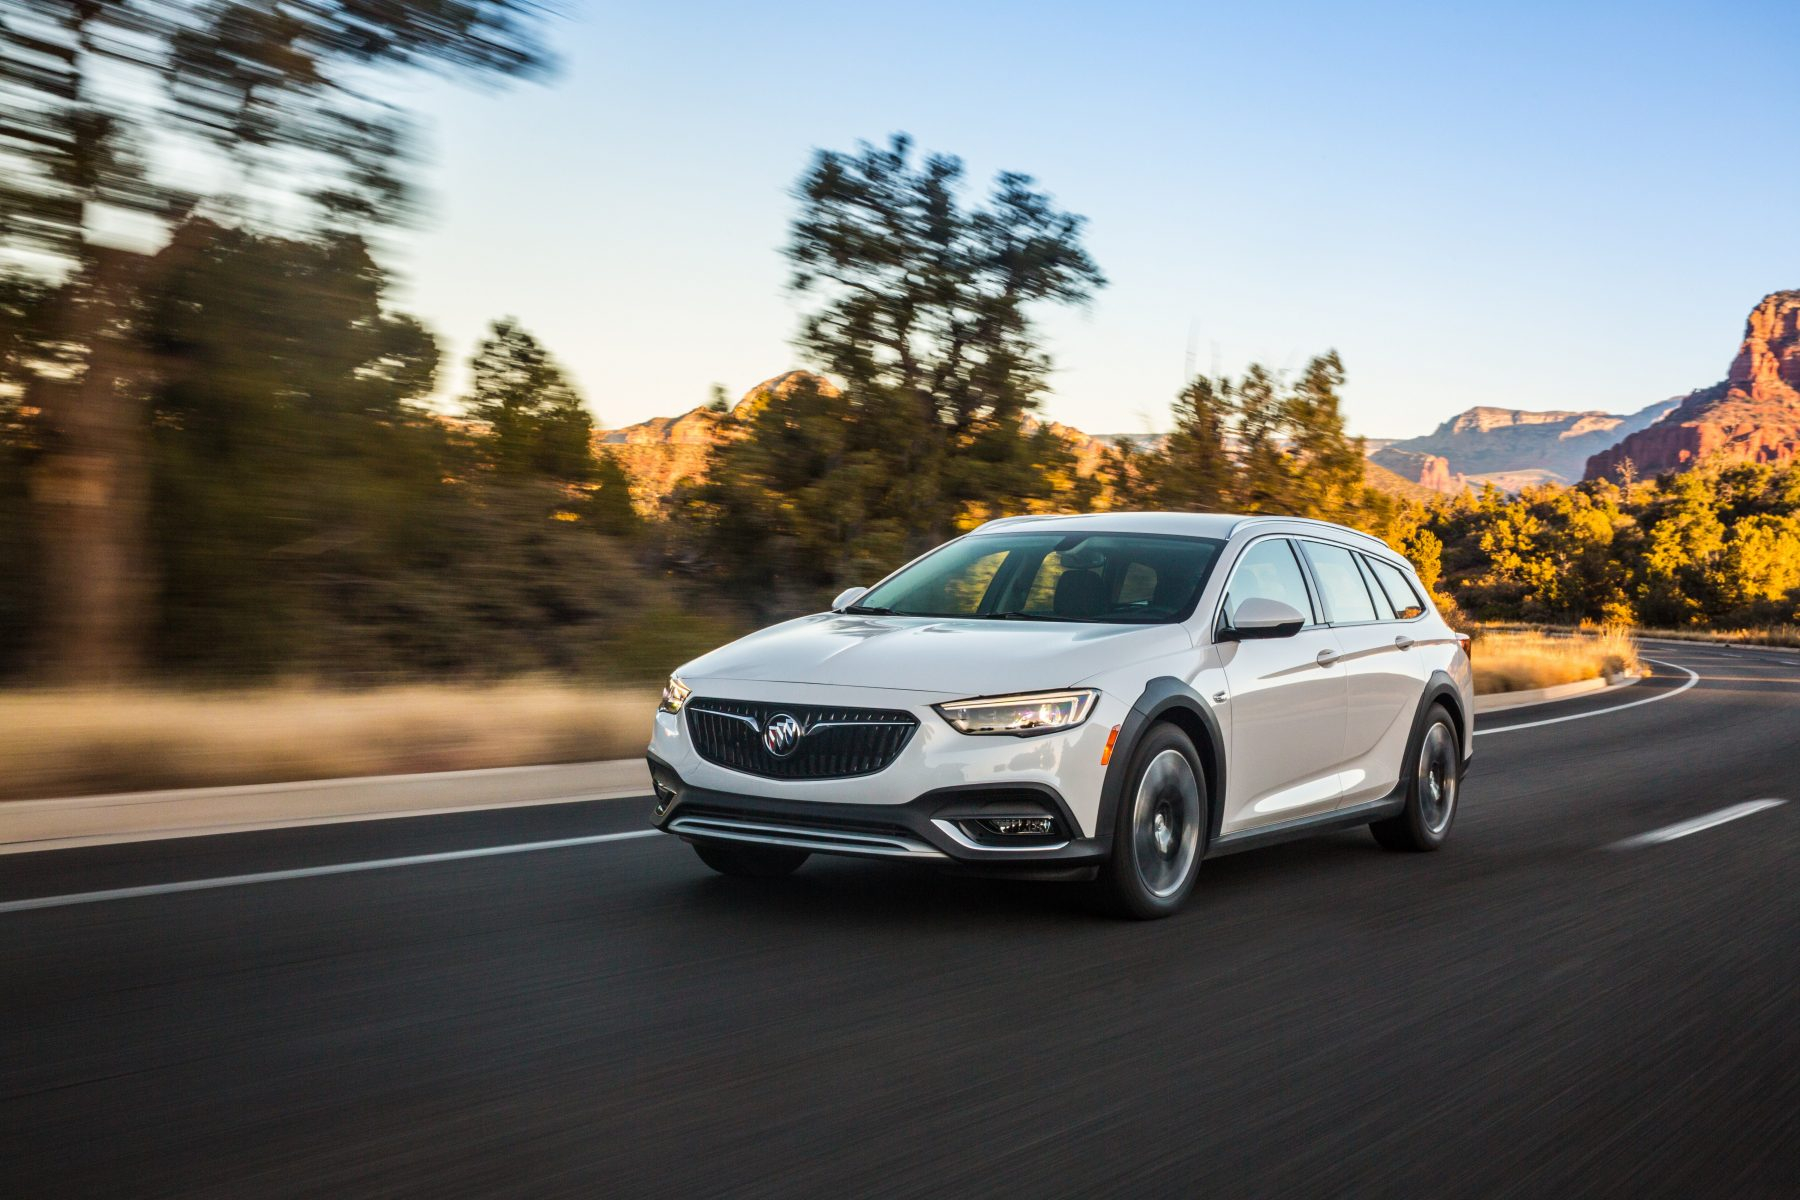 2018 Buick Regal Tourx Second Take: King Of The Wagon 2022 Buick Regal Tourx Review, Specs, 0-60